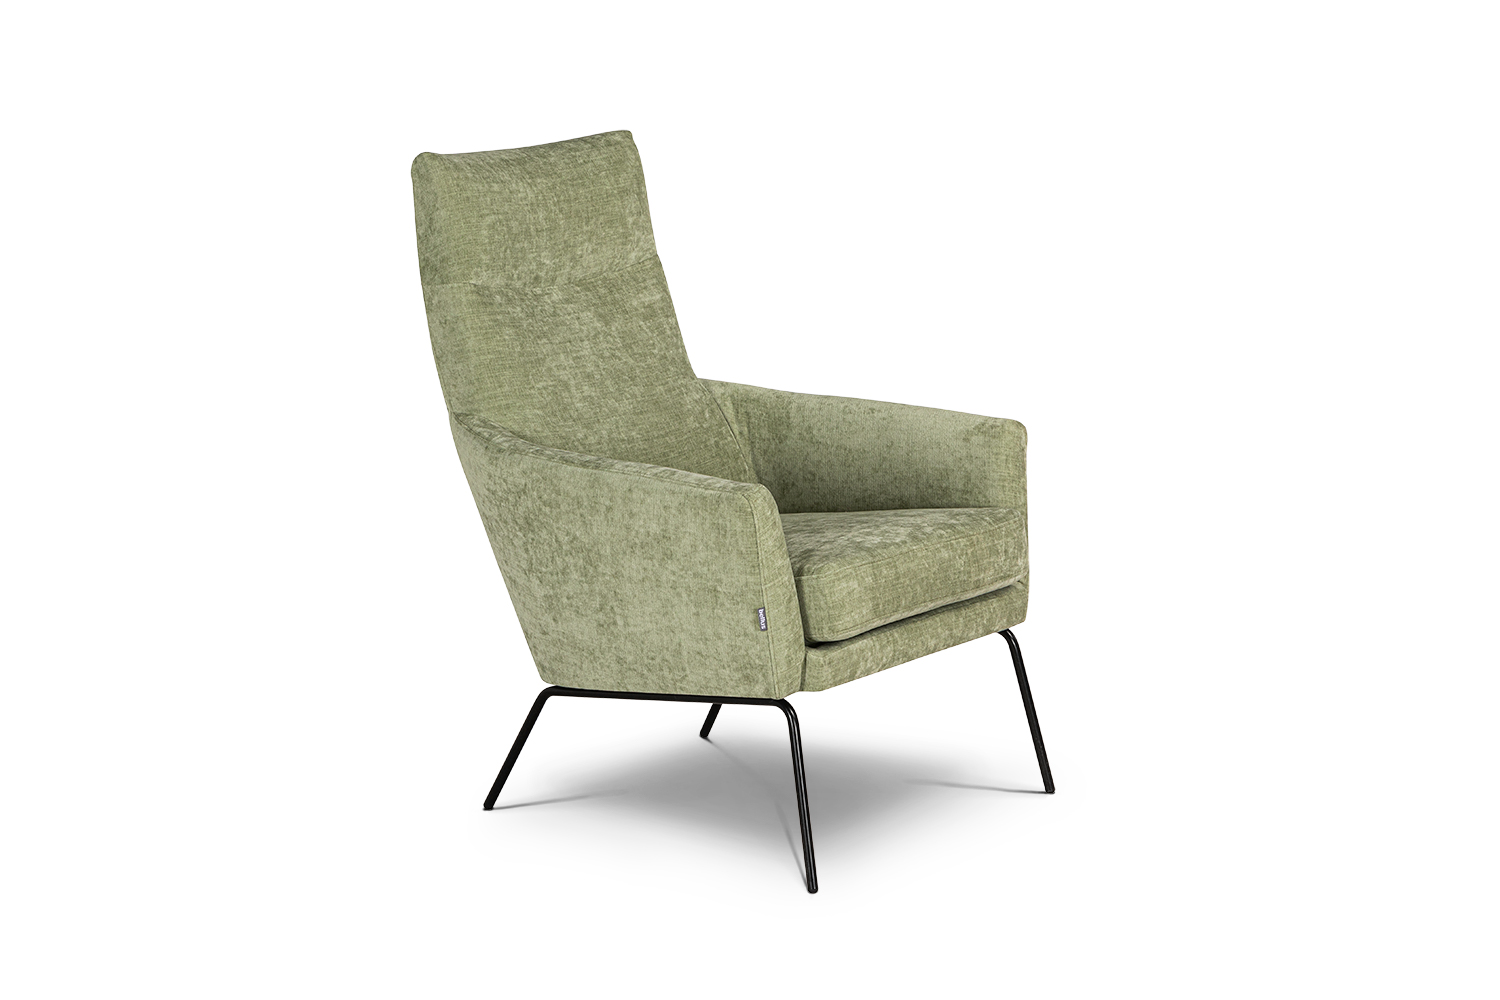 In picture Geneve chair Fabric Diego6012